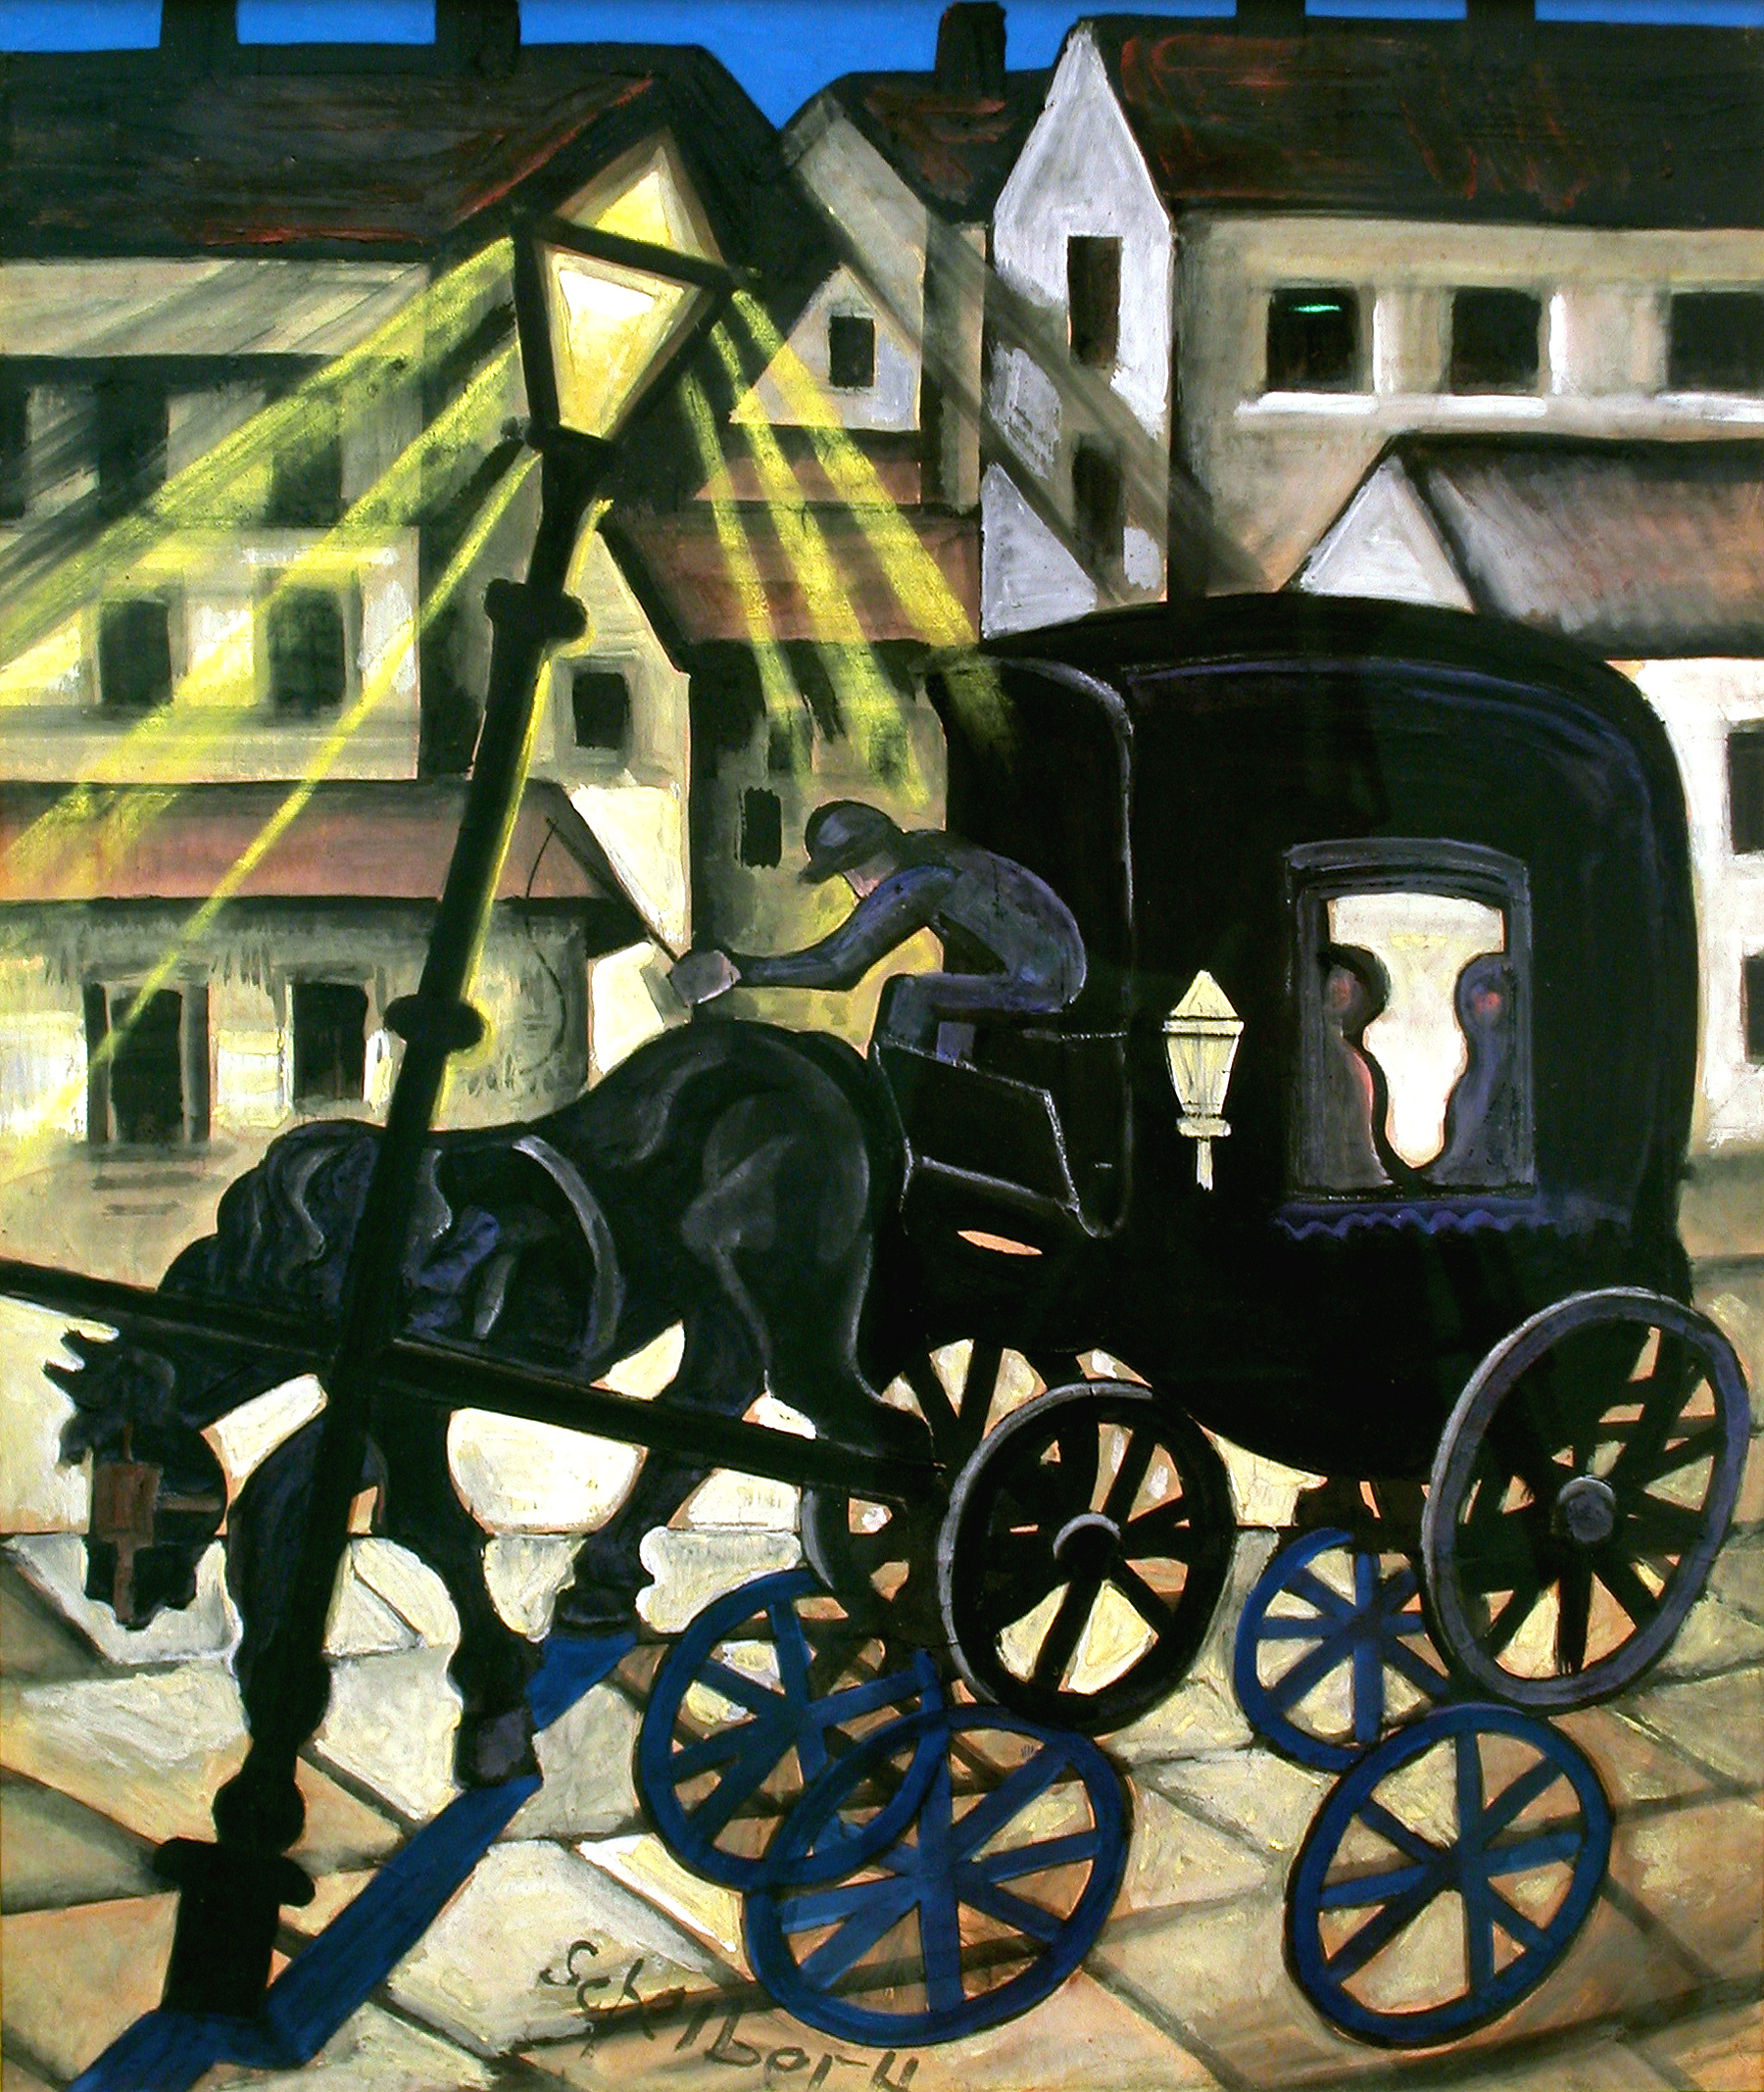 Hugó Scheiber  (1873-1950)   Carriage at Night , c. 1930  tempera and gouache on paper  27.5 x 22.5 inches; 69.9 x 182.9 centimeters